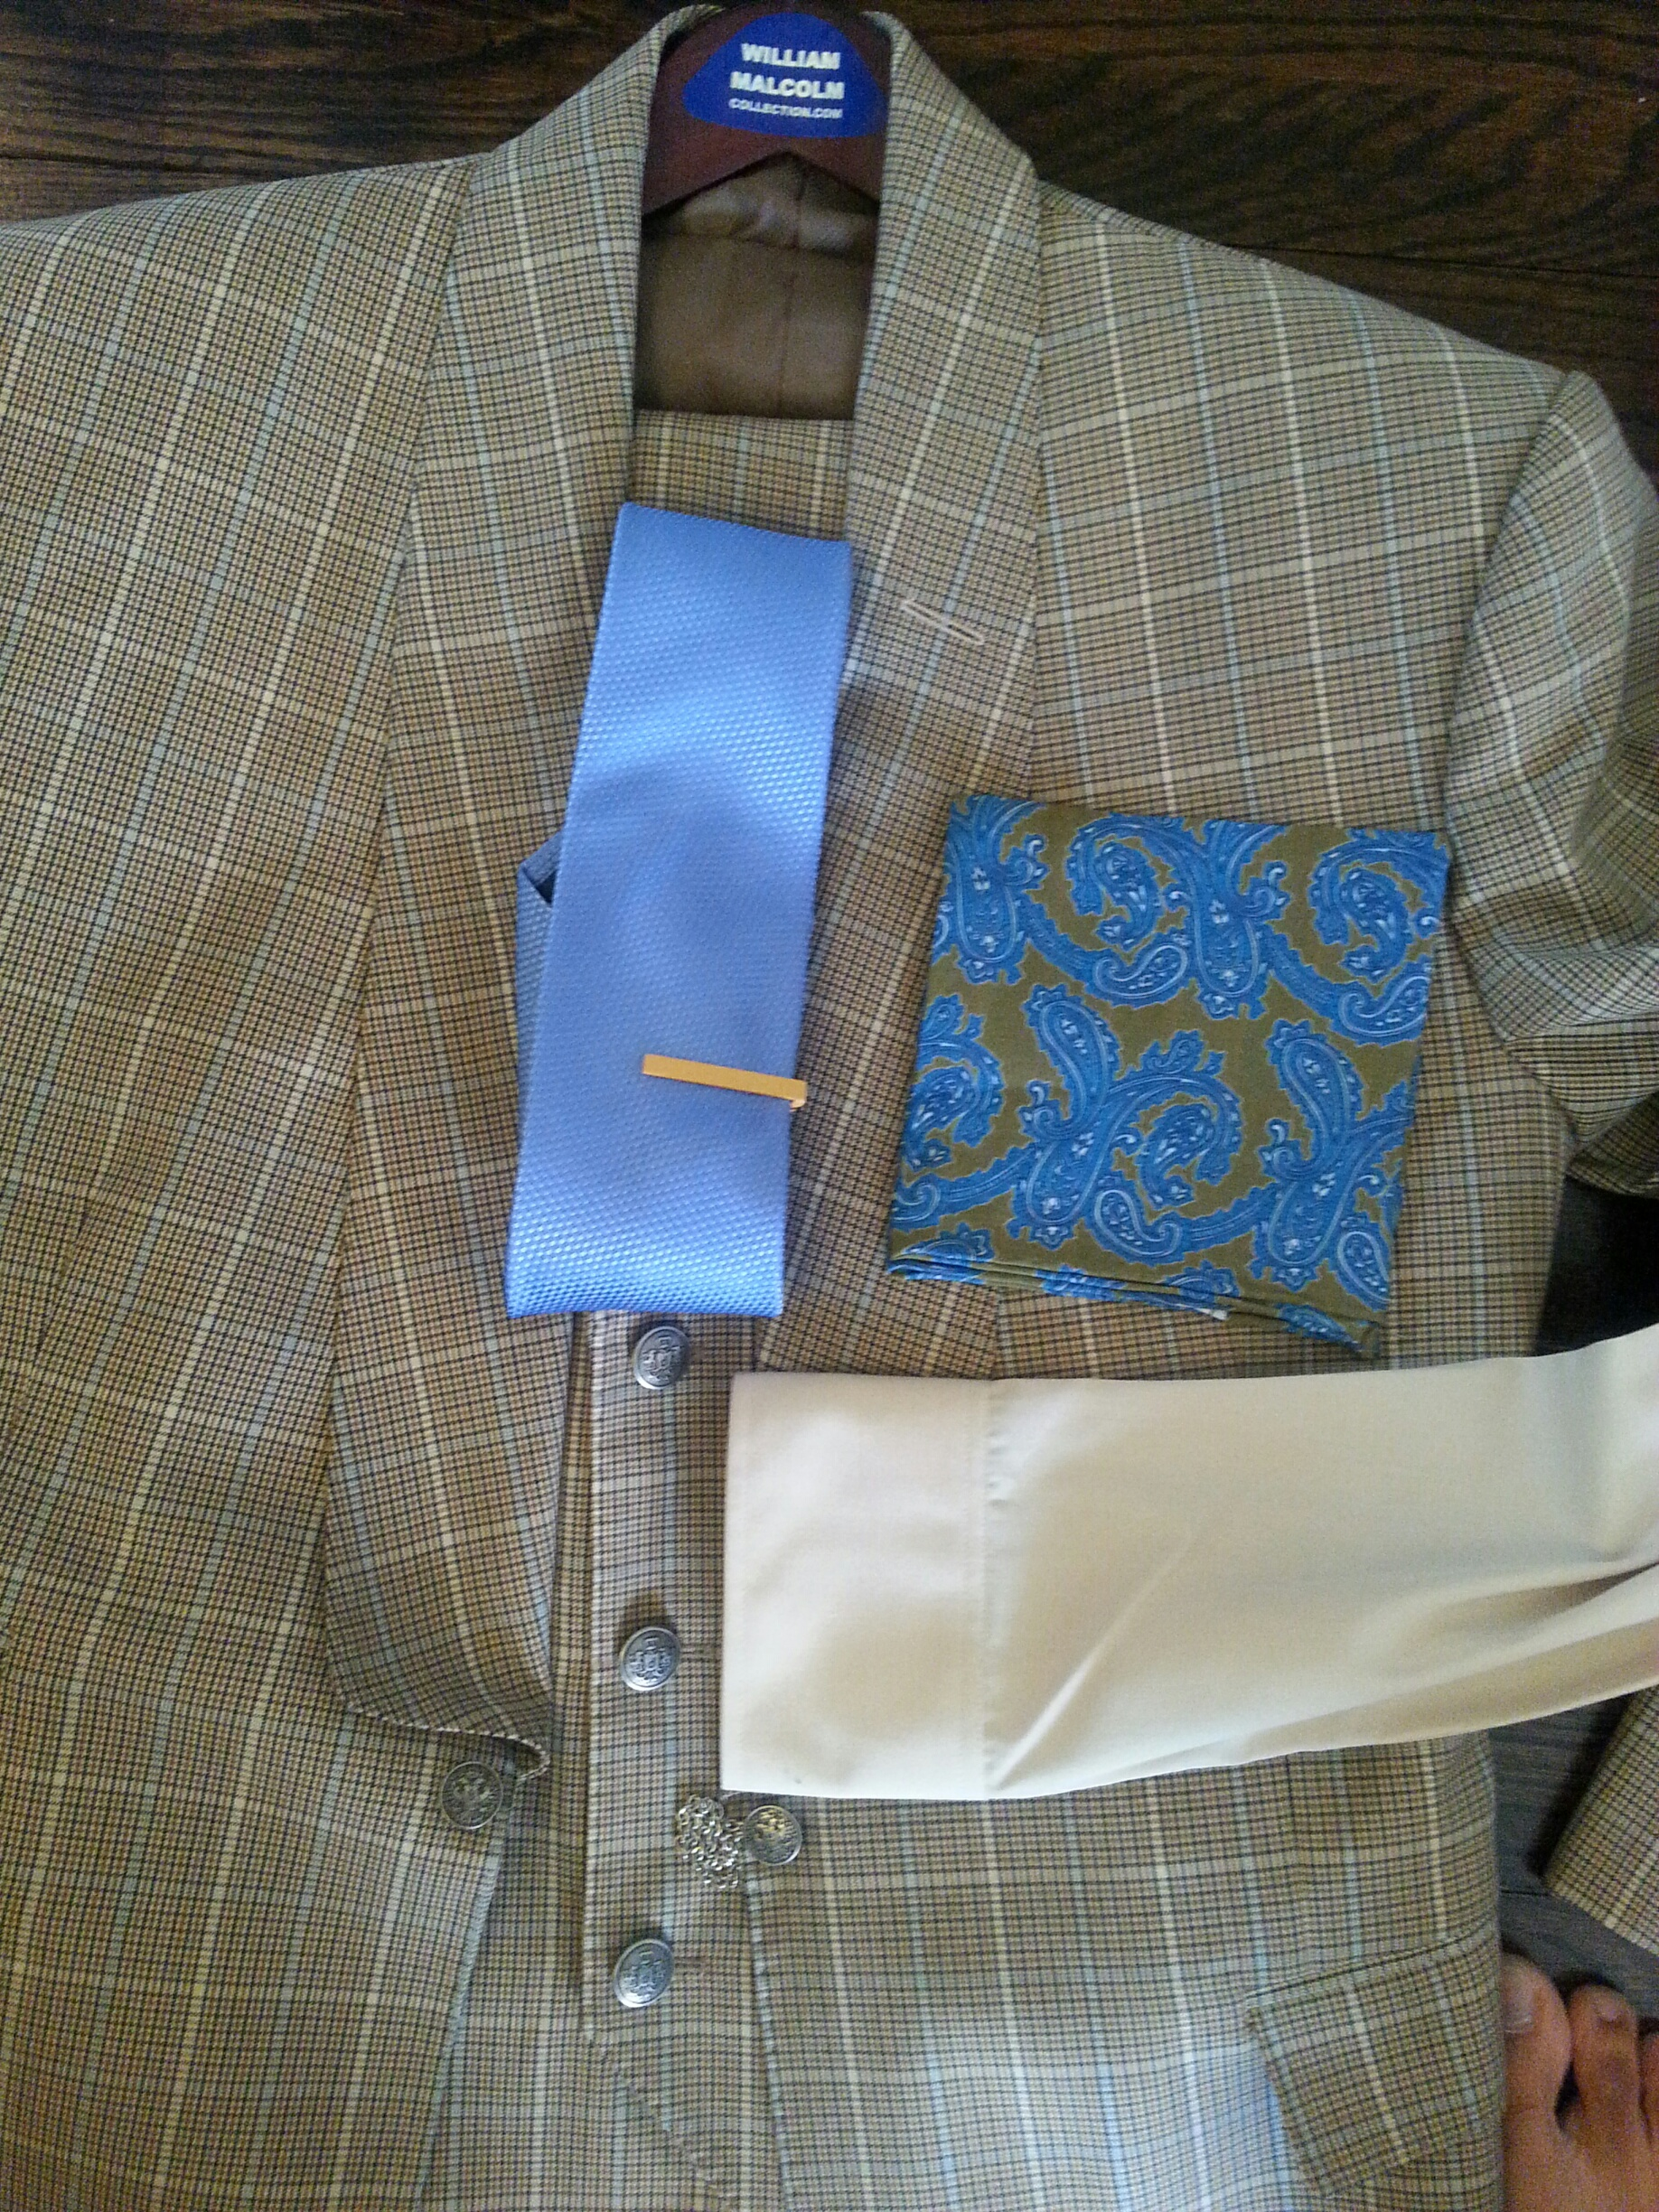 Bespoke Suit With Silver Chain Closure...William Malcolm Luxe Collection  Bespoke Suits